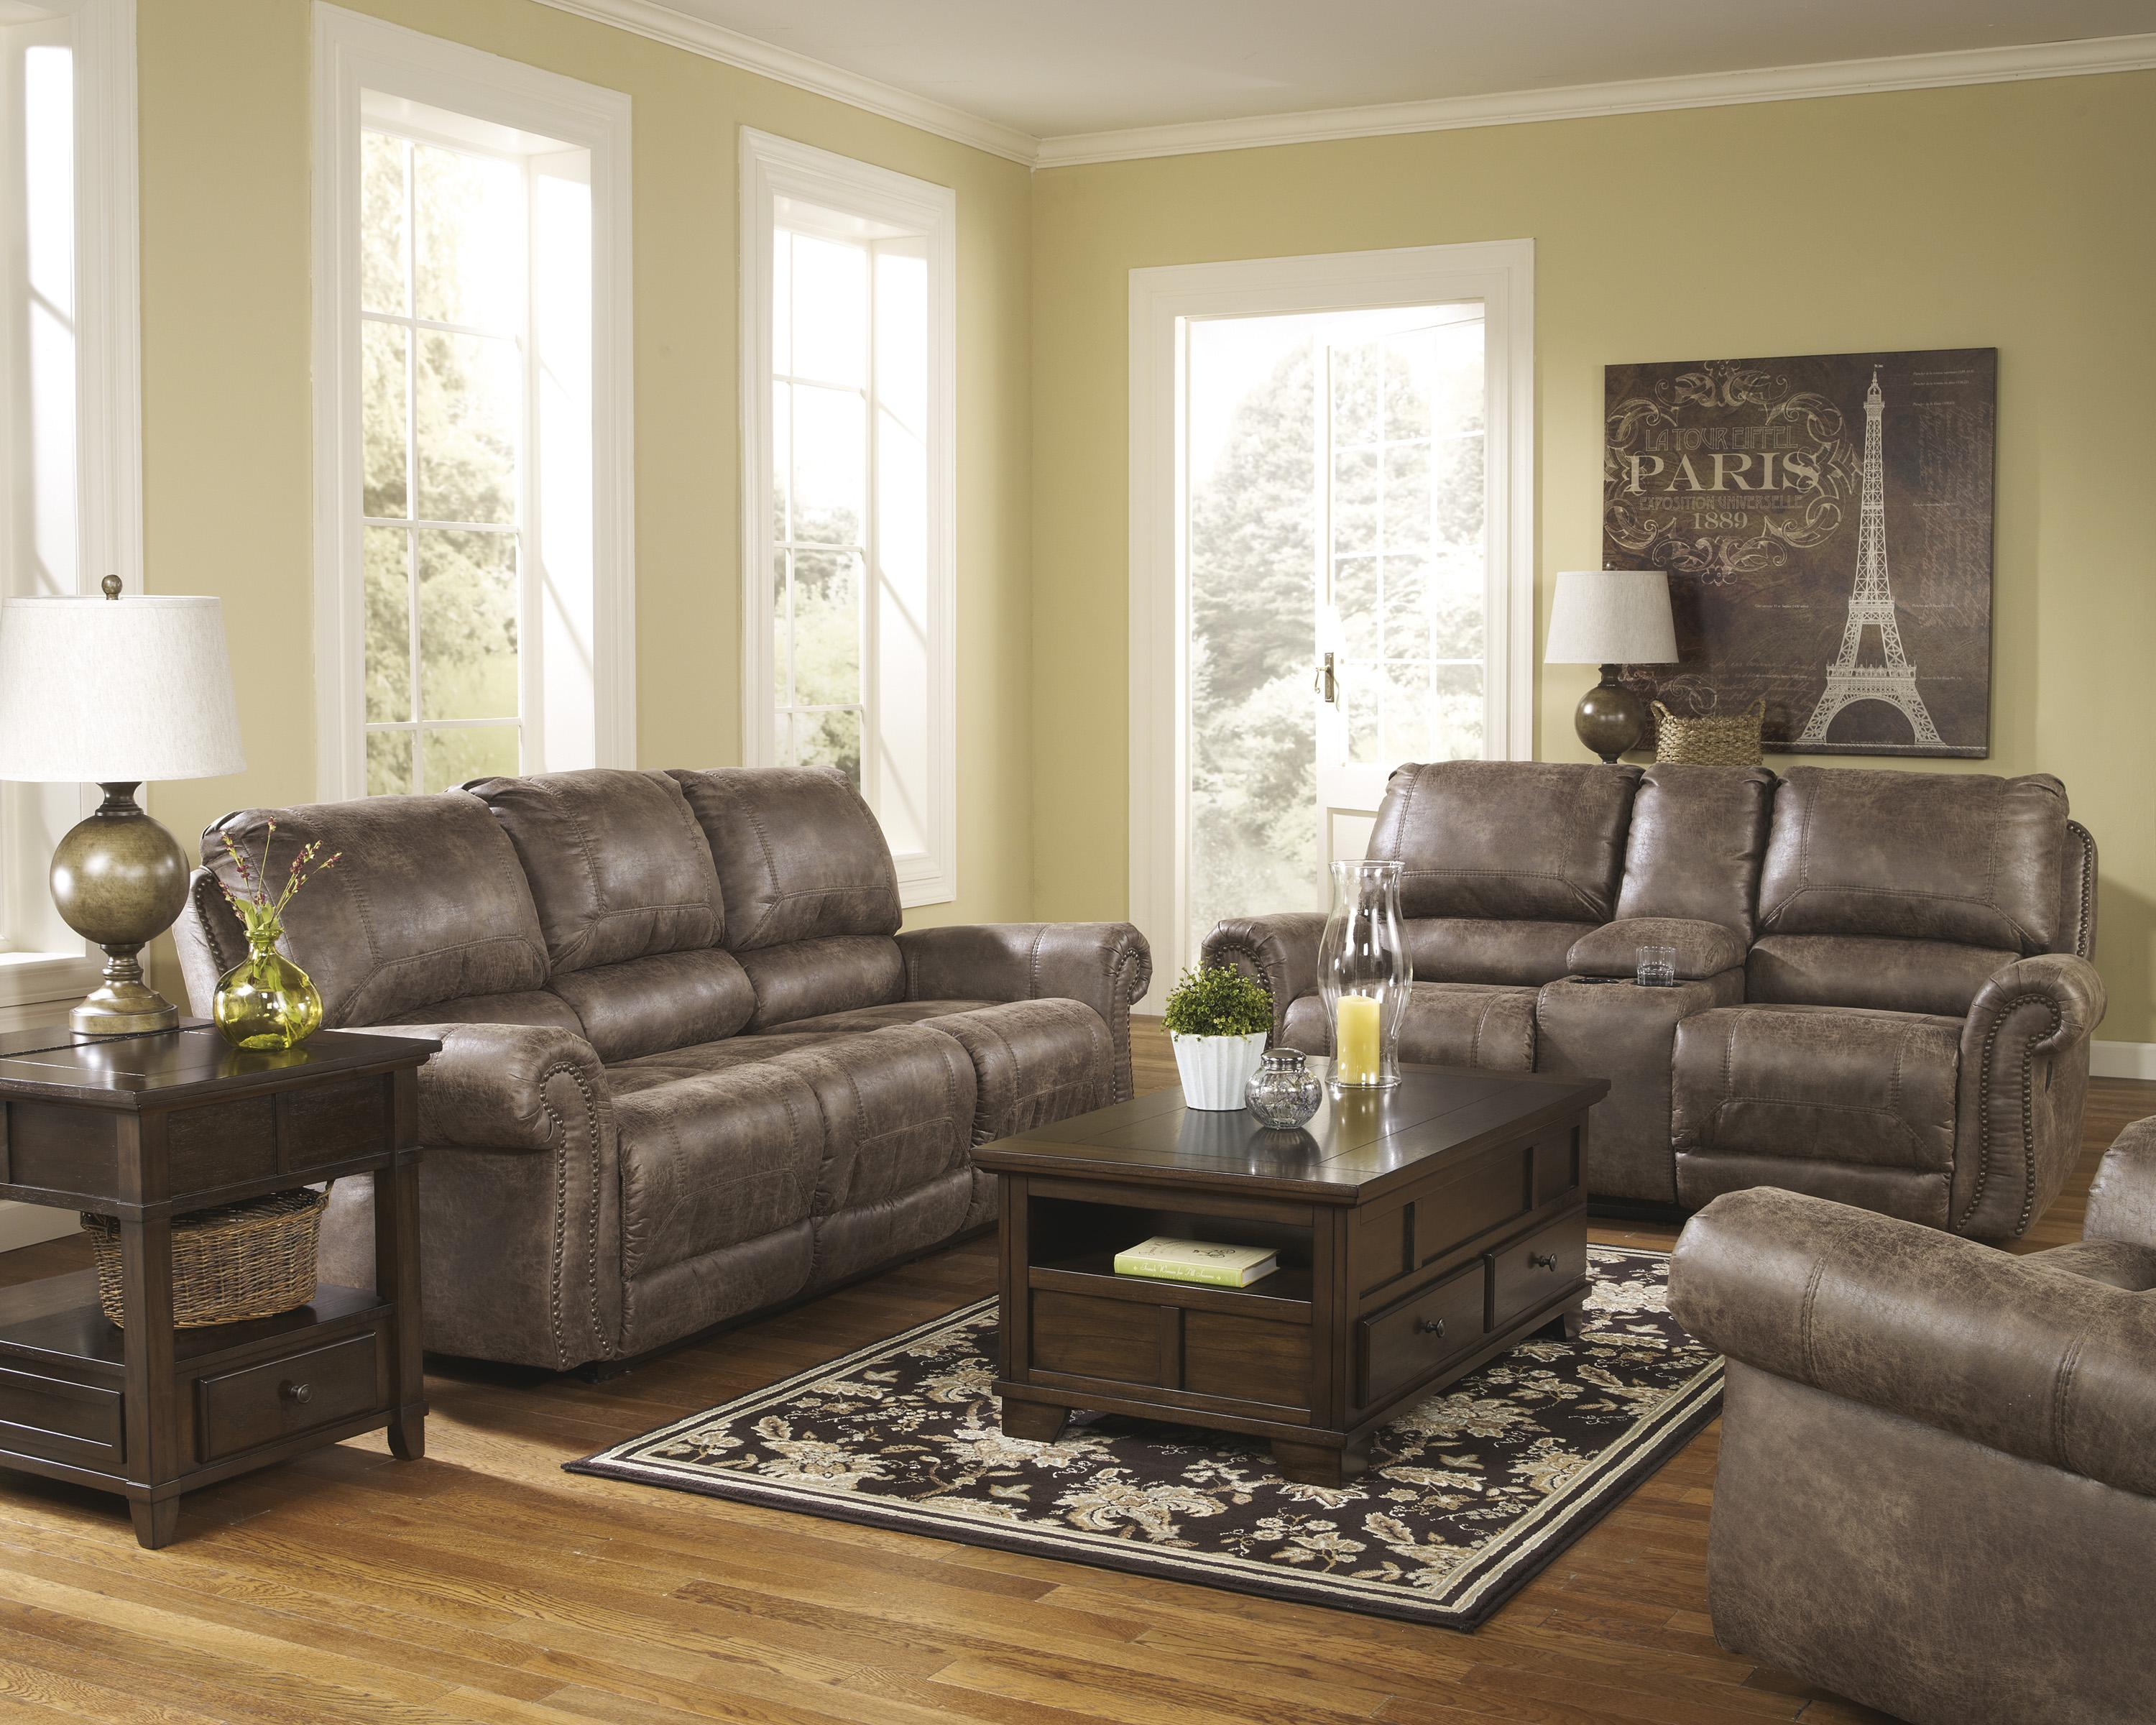 Signature Design by Ashley Oberson - Gunsmoke Reclining Living Room Group - Item Number: 74100 Living Room Group 3